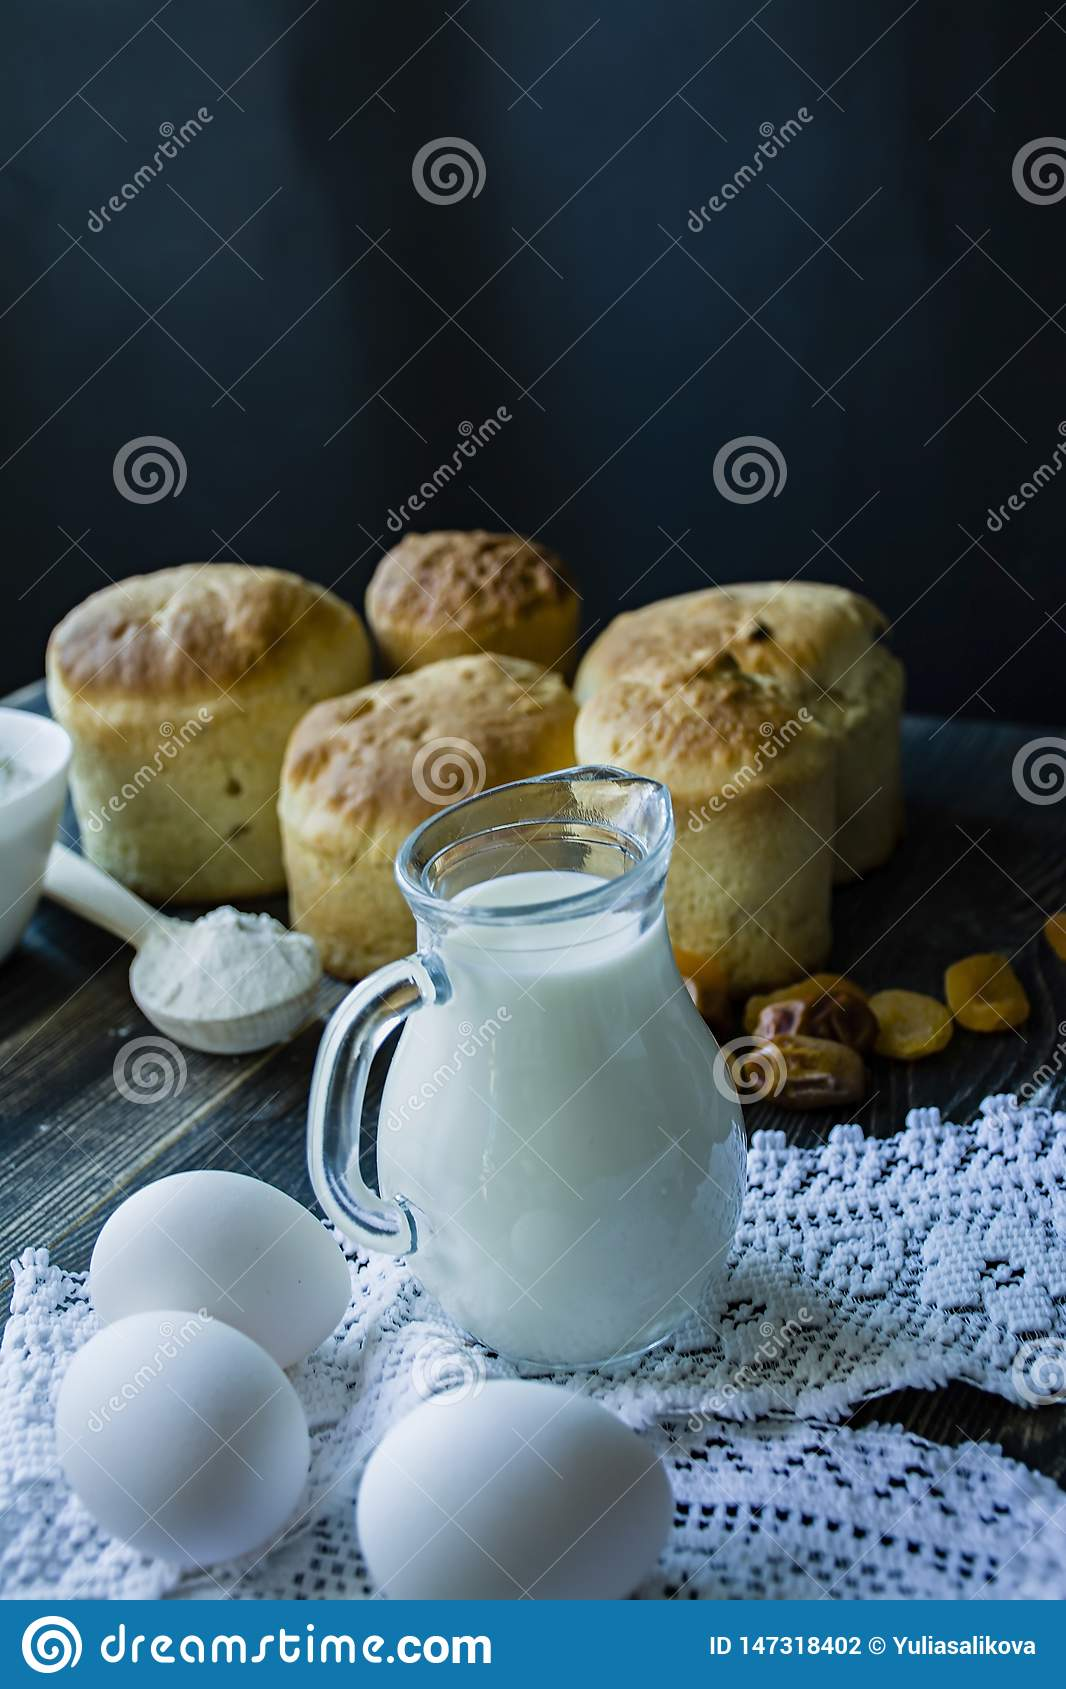 Carafe with milk in the background Easter cakes on a dark background. Fresh cakes with dried fruits. The process of cooking Easter